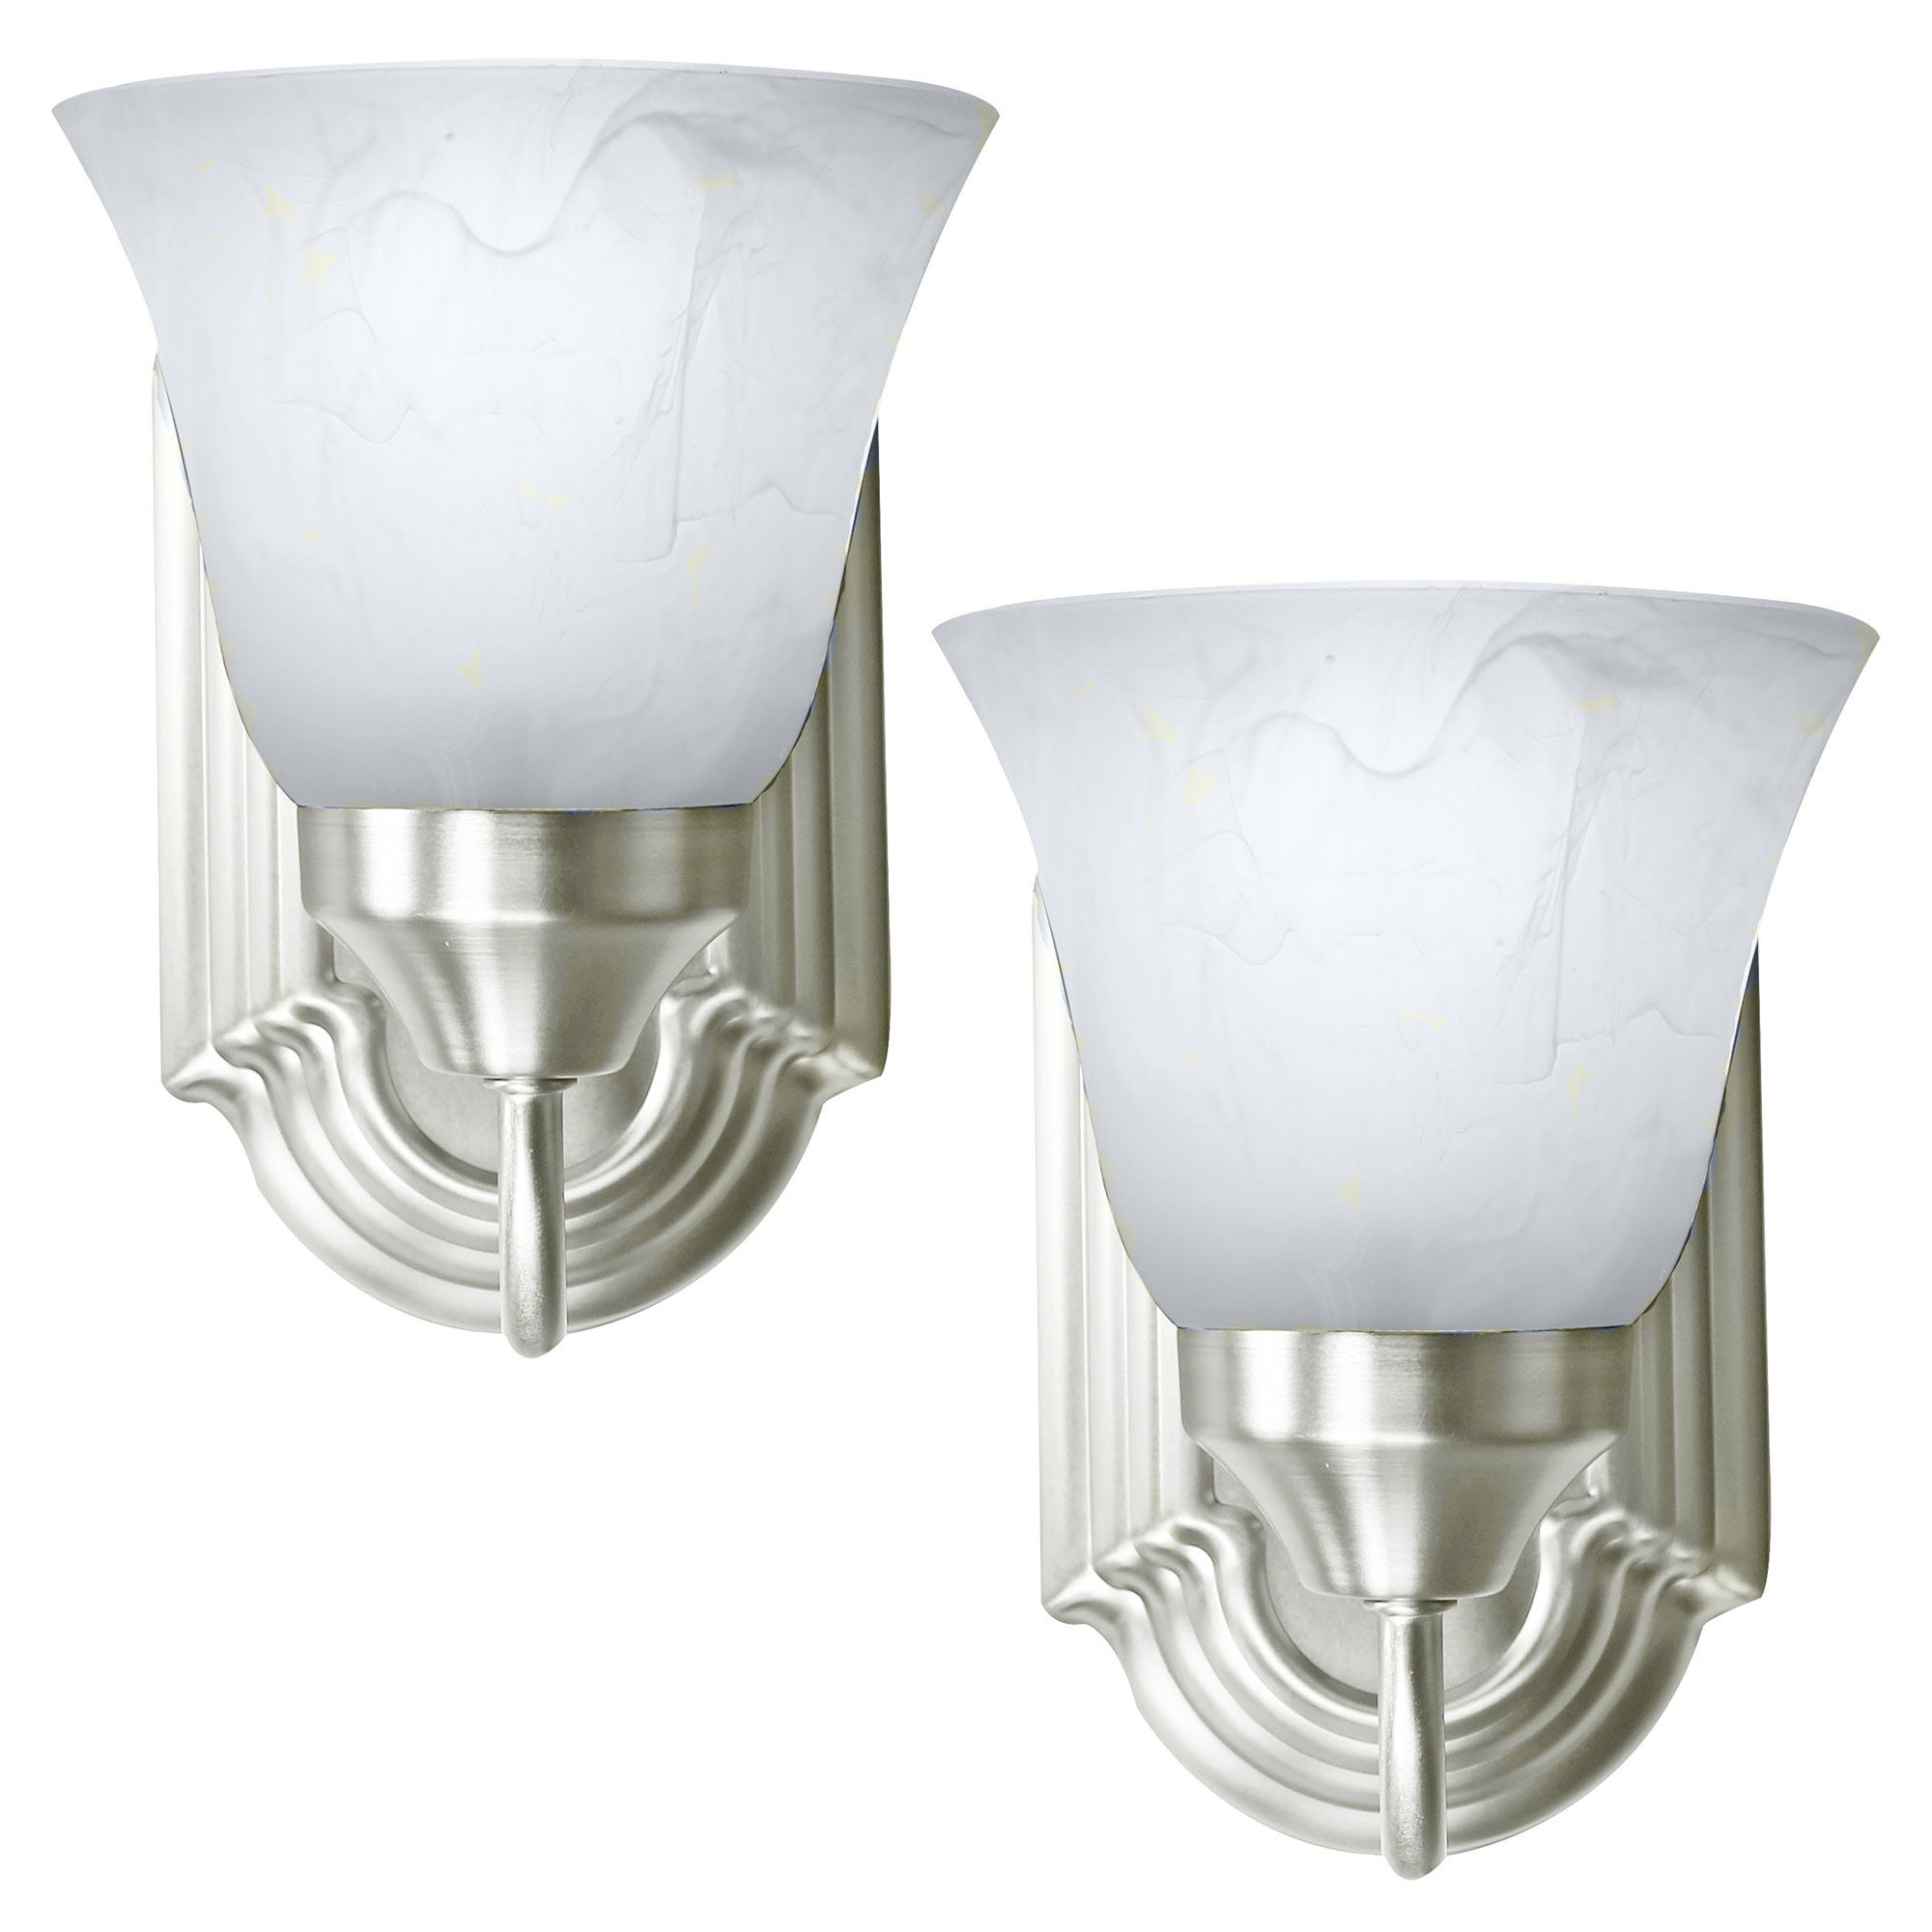 2 Pack Of Bennington Luna Wall Sconce